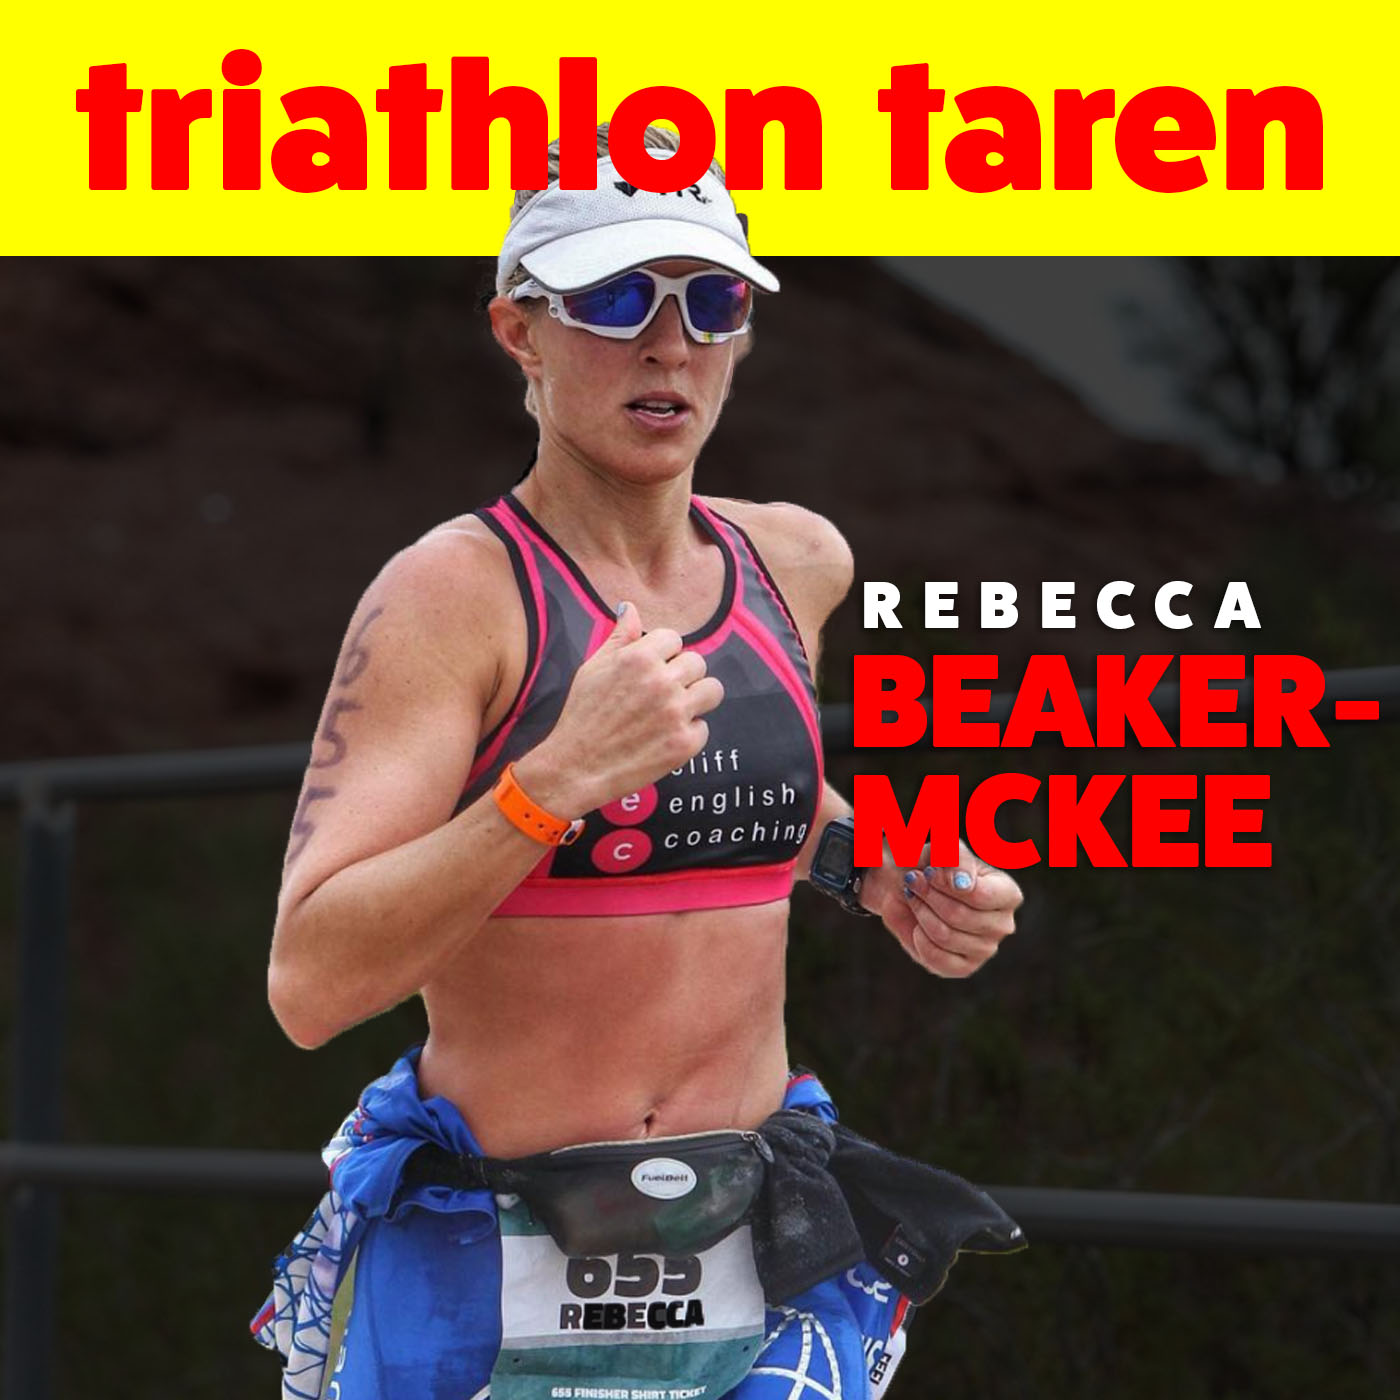 Rebecca Beaker-McKee: One of the Best Age Groupers in the World On Balancing Ironman with Life